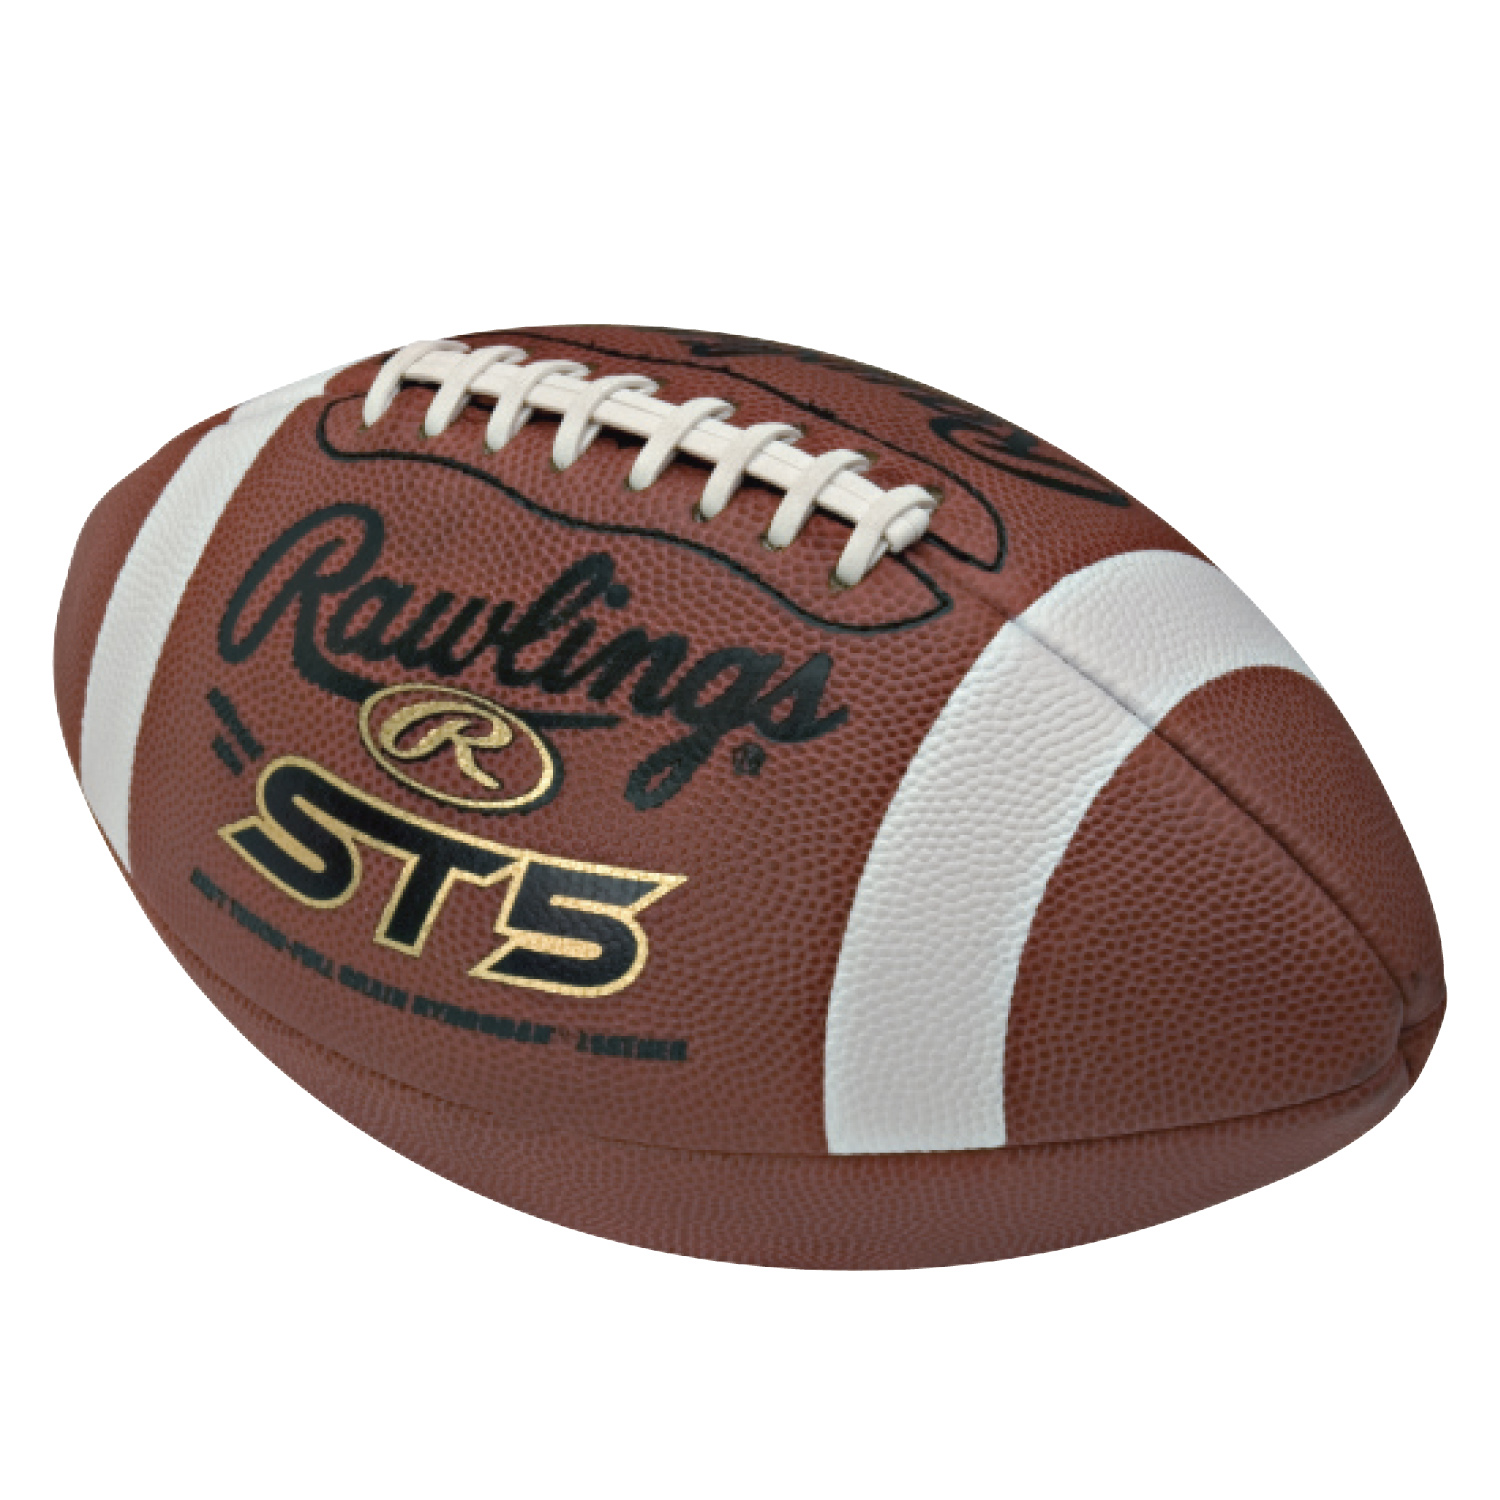 Leather Football Rawlings ST5 Official Football